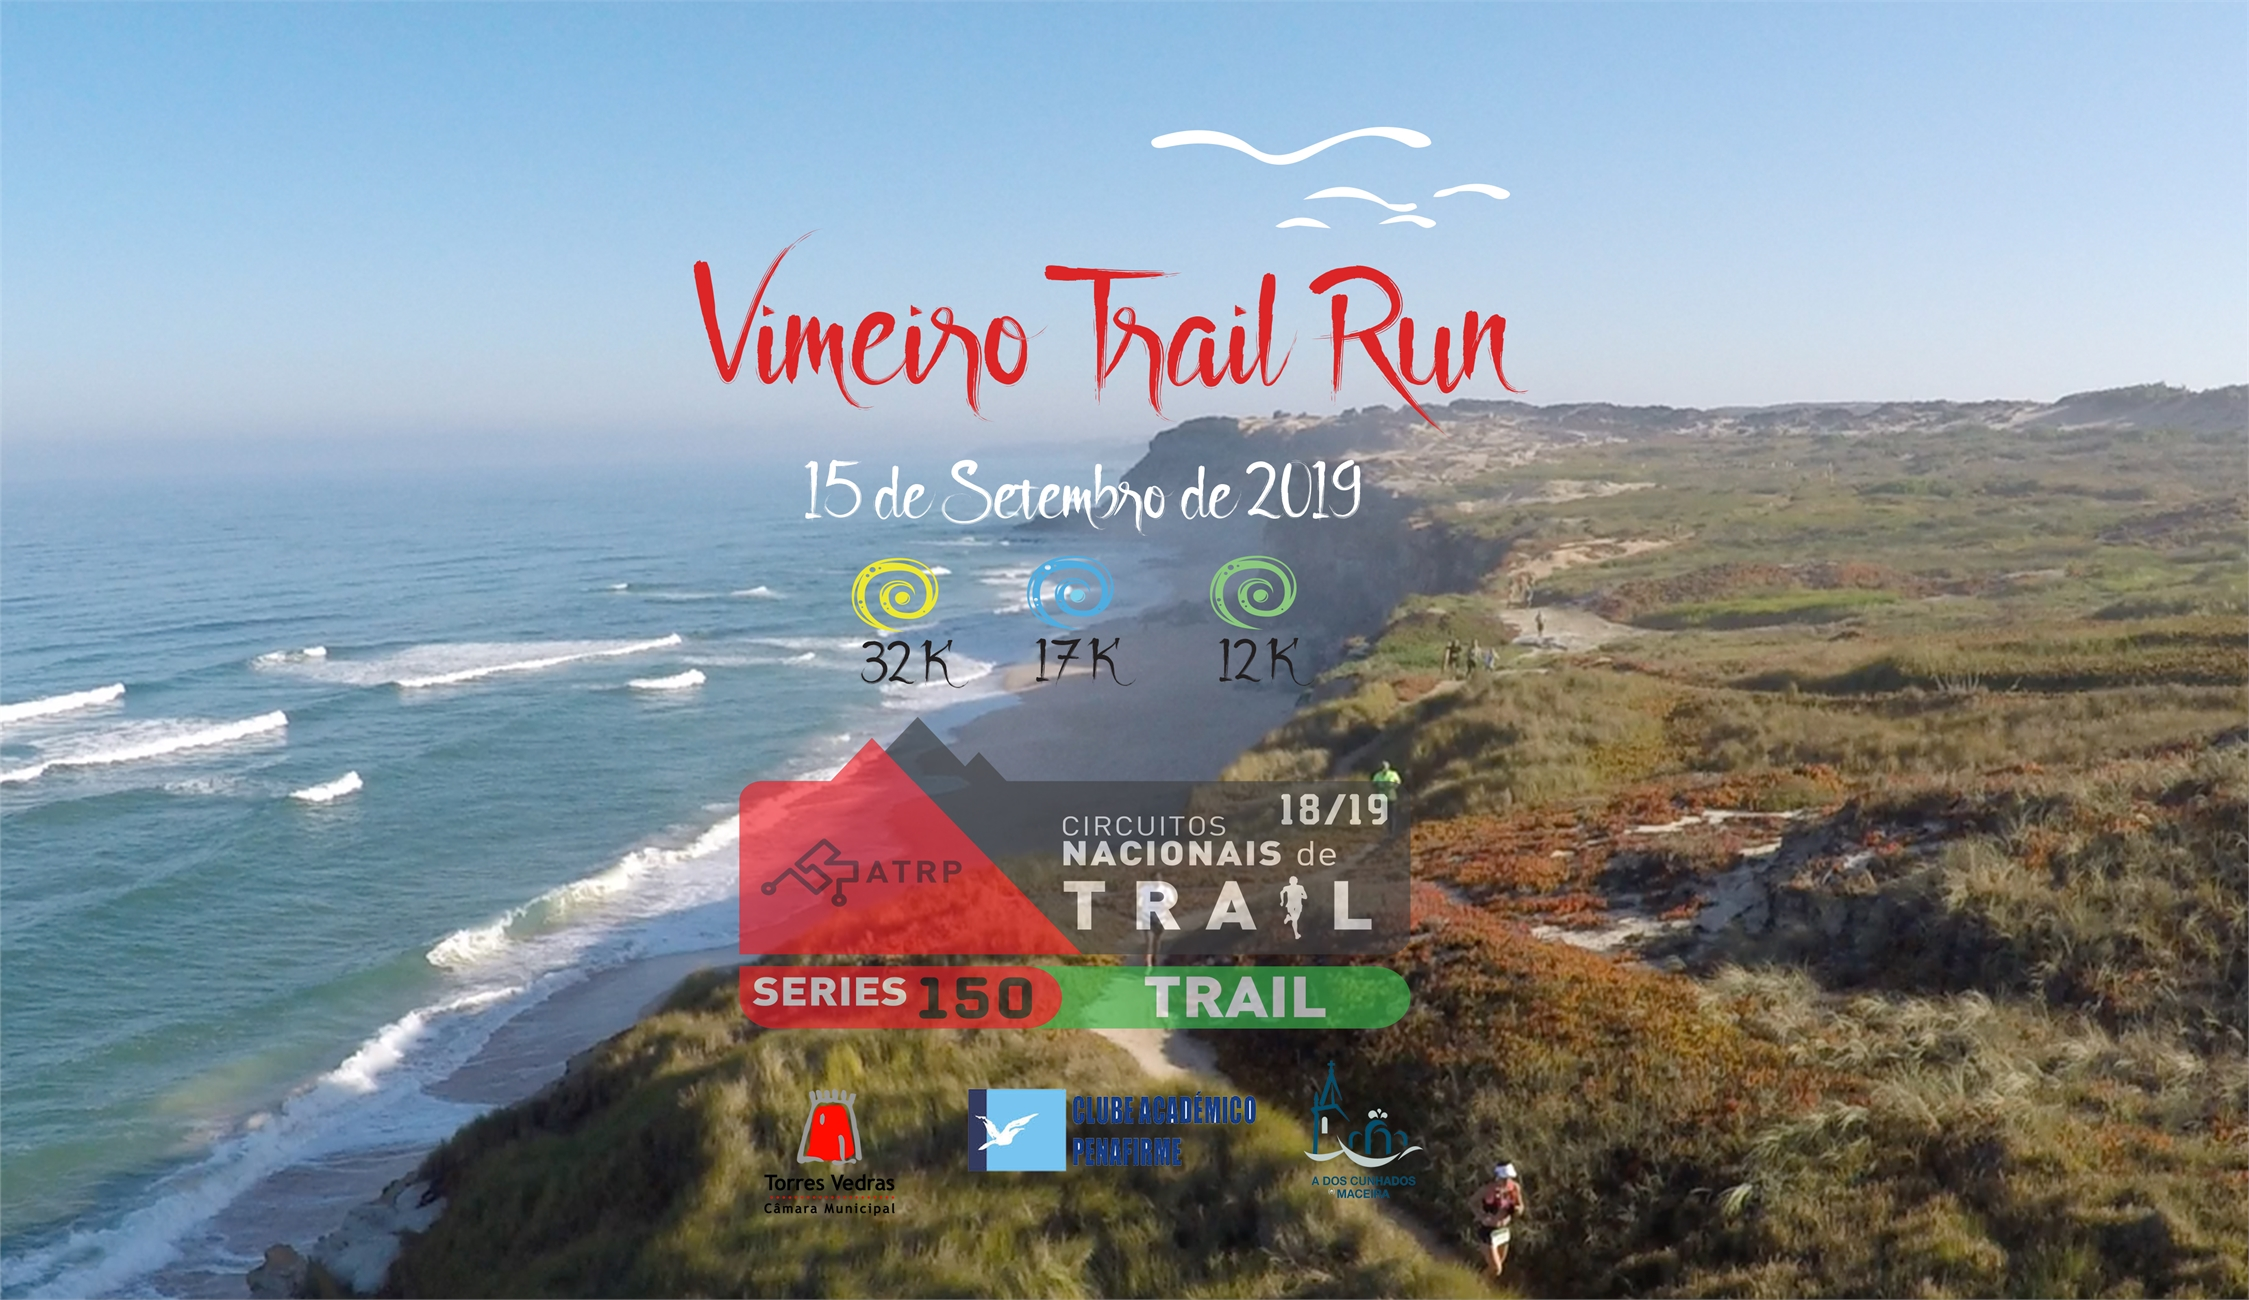 Vimeiro Trail Run 2019  - Eventos - TURRESEVENTS